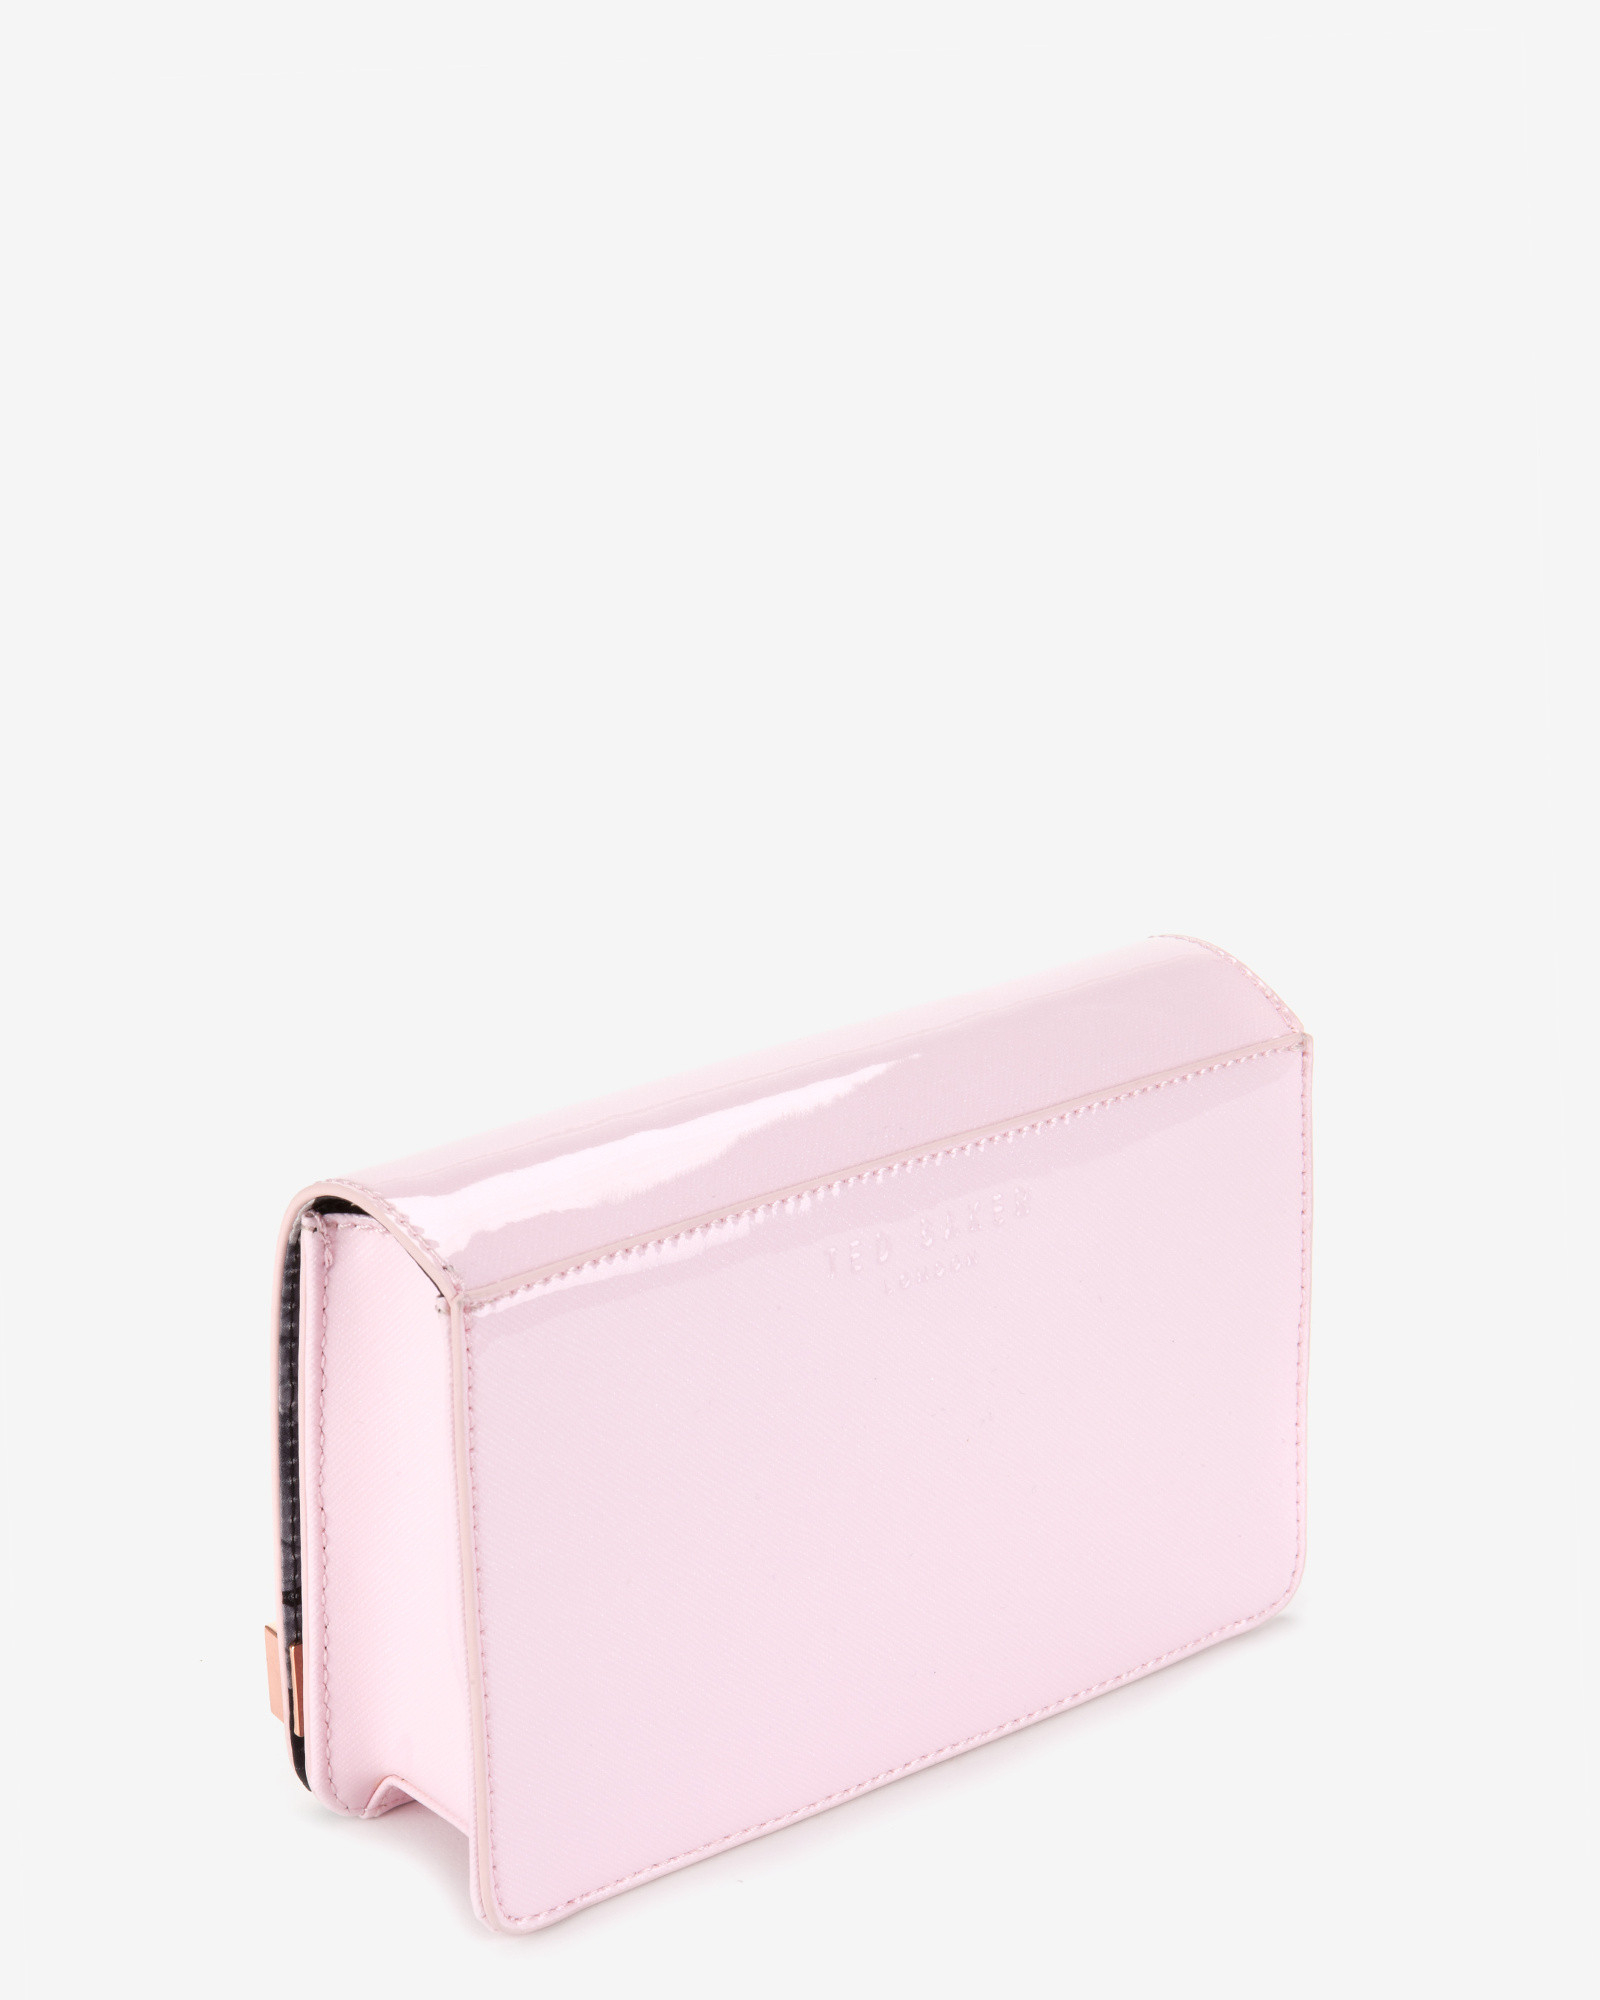 Ted baker Patent Crosshatch Clutch Bag in Pink | Lyst